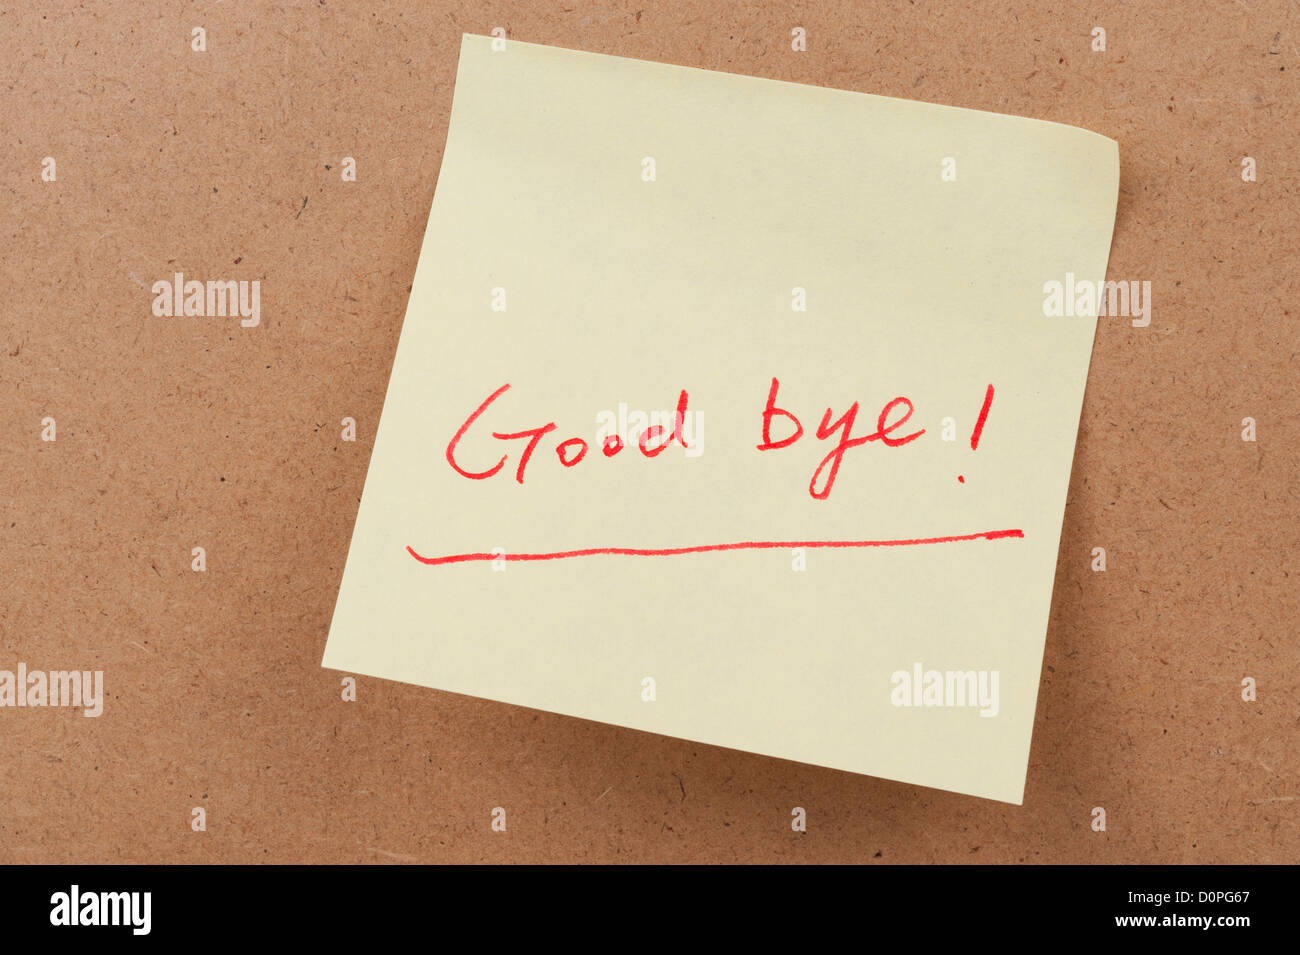 Good bye words written on sticky note and attached on the board - Stock Image